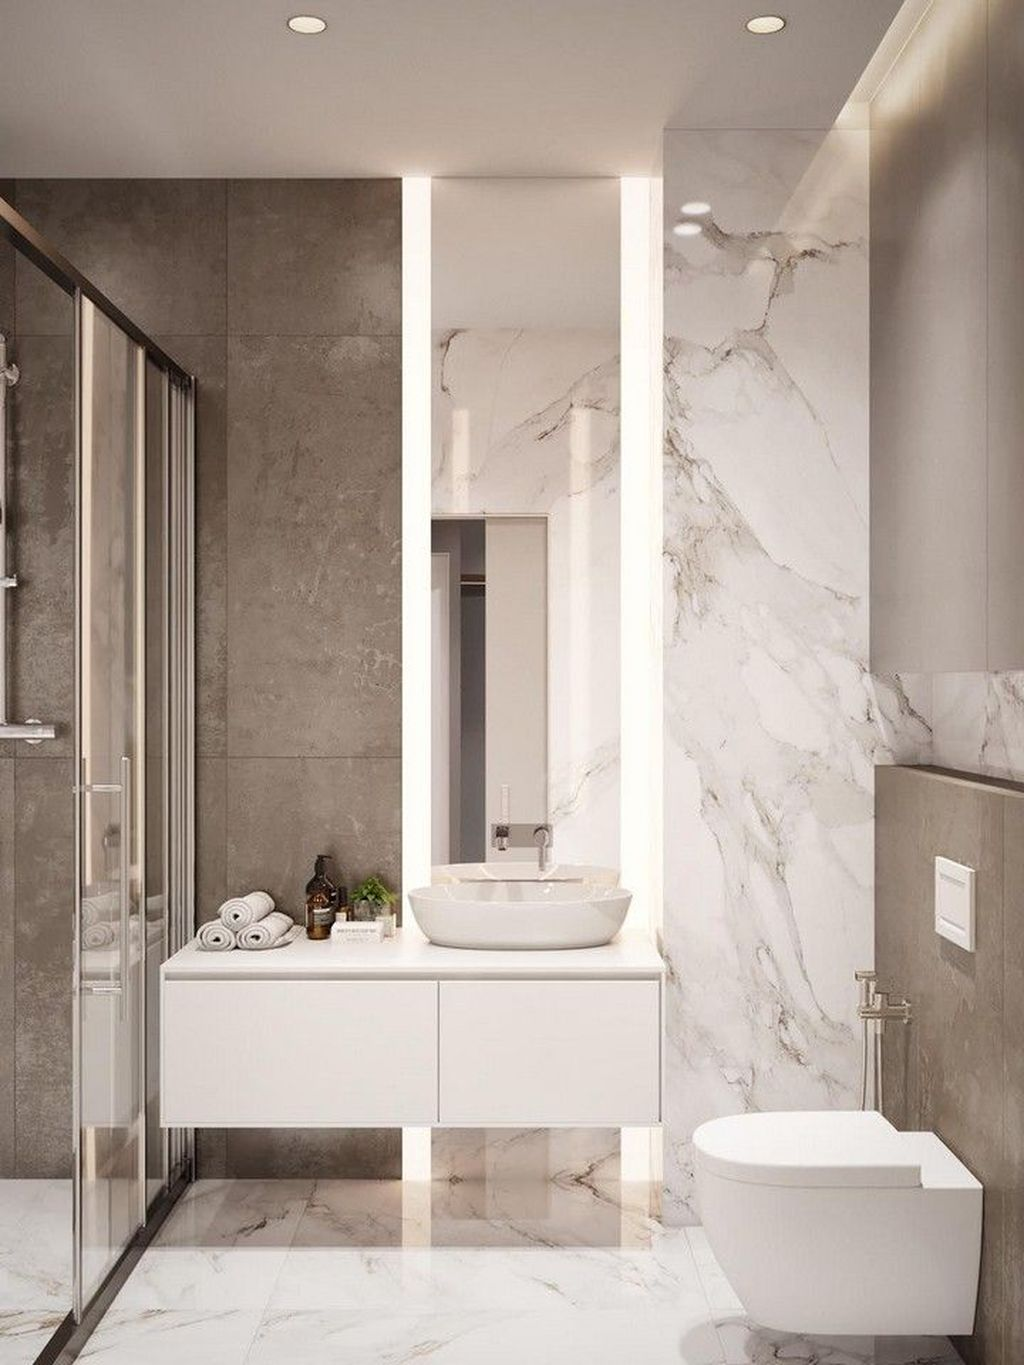 Inspiring Bathroom Interior Design Ideas 32